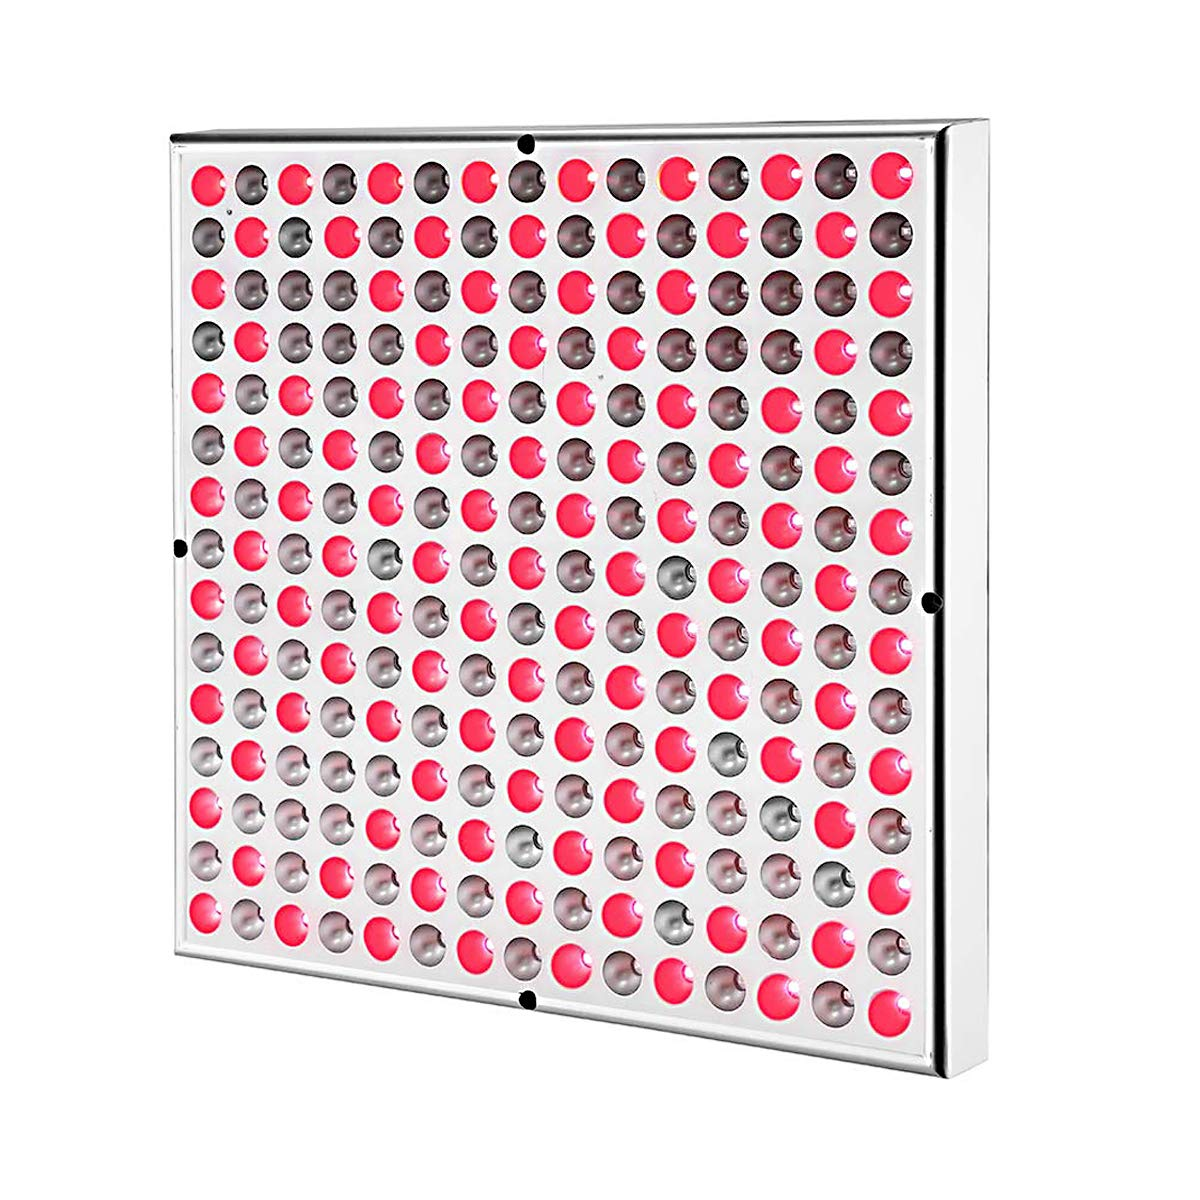 45W Red Led Light Therapy Deep Red 660nm and Near Infrared 850nm Led Light Therapy Panel, Free Eyewear & Free Holder Included